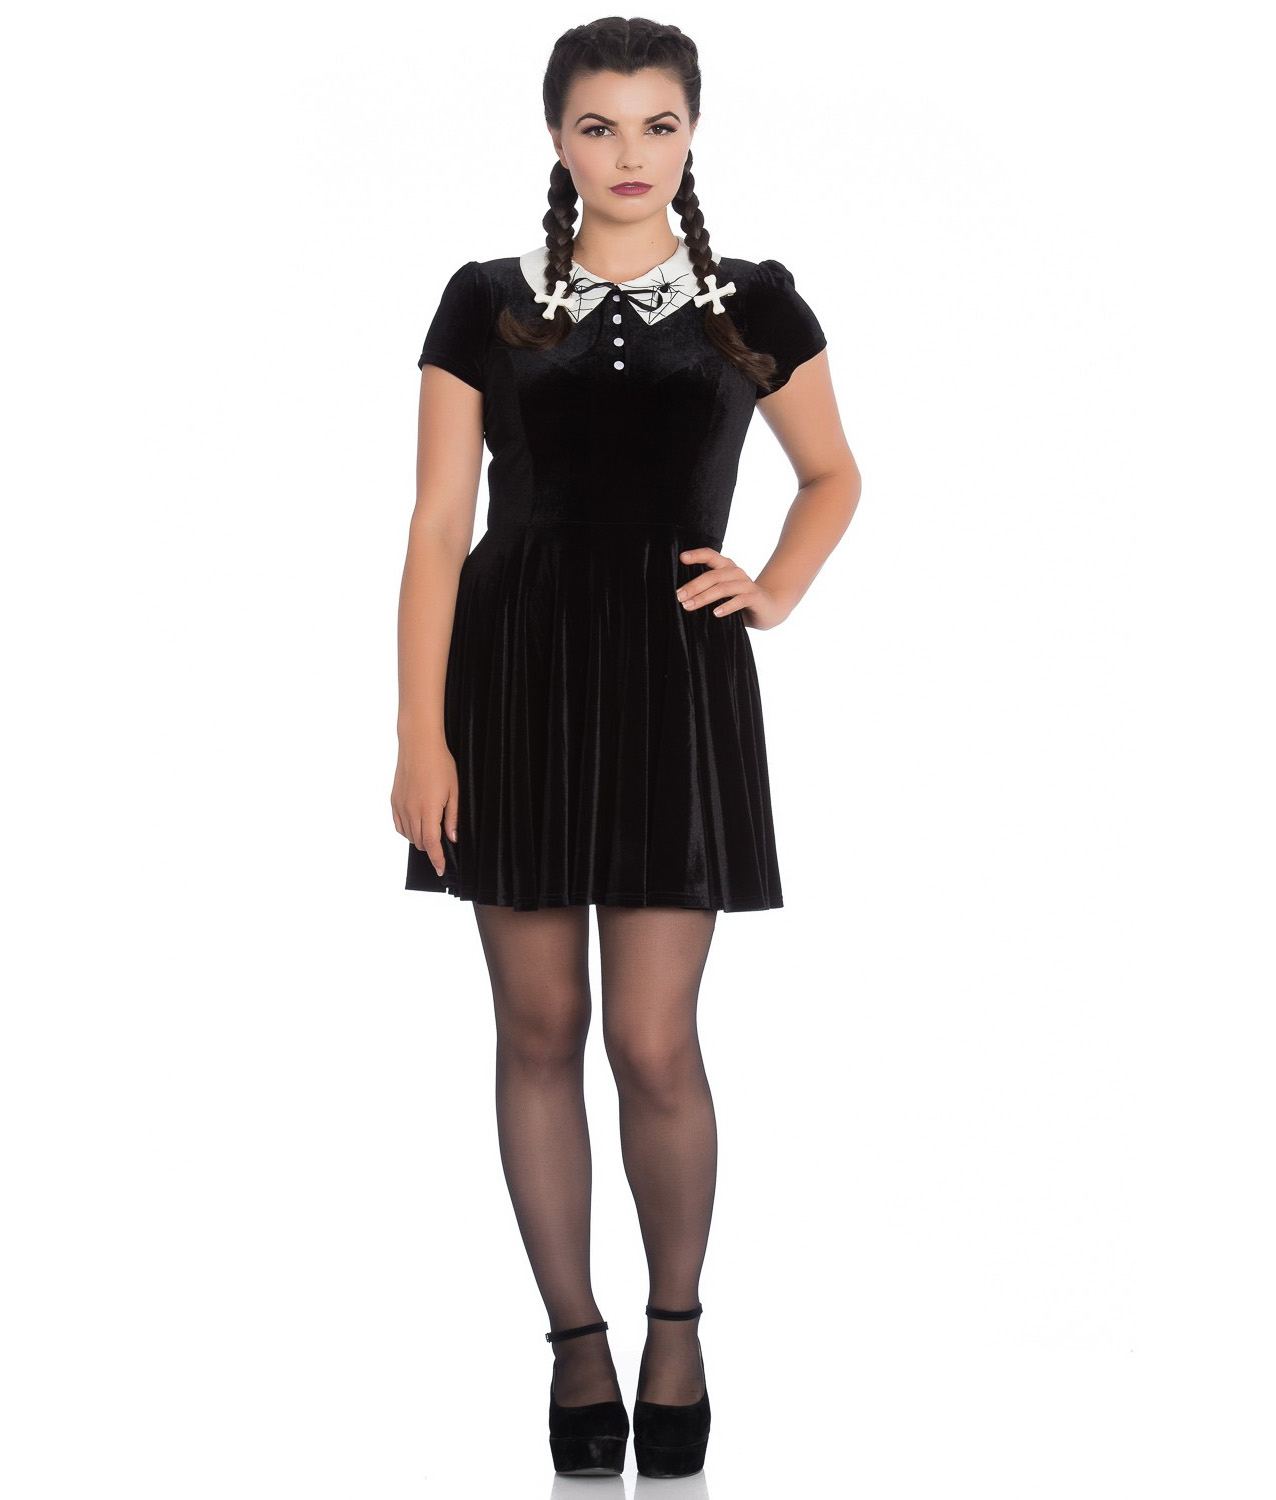 Hell-Bunny-Gothic-Mini-Skater-Dress-MISS-MUFFET-Spiders-Black-Velvet-All-Sizes thumbnail 23